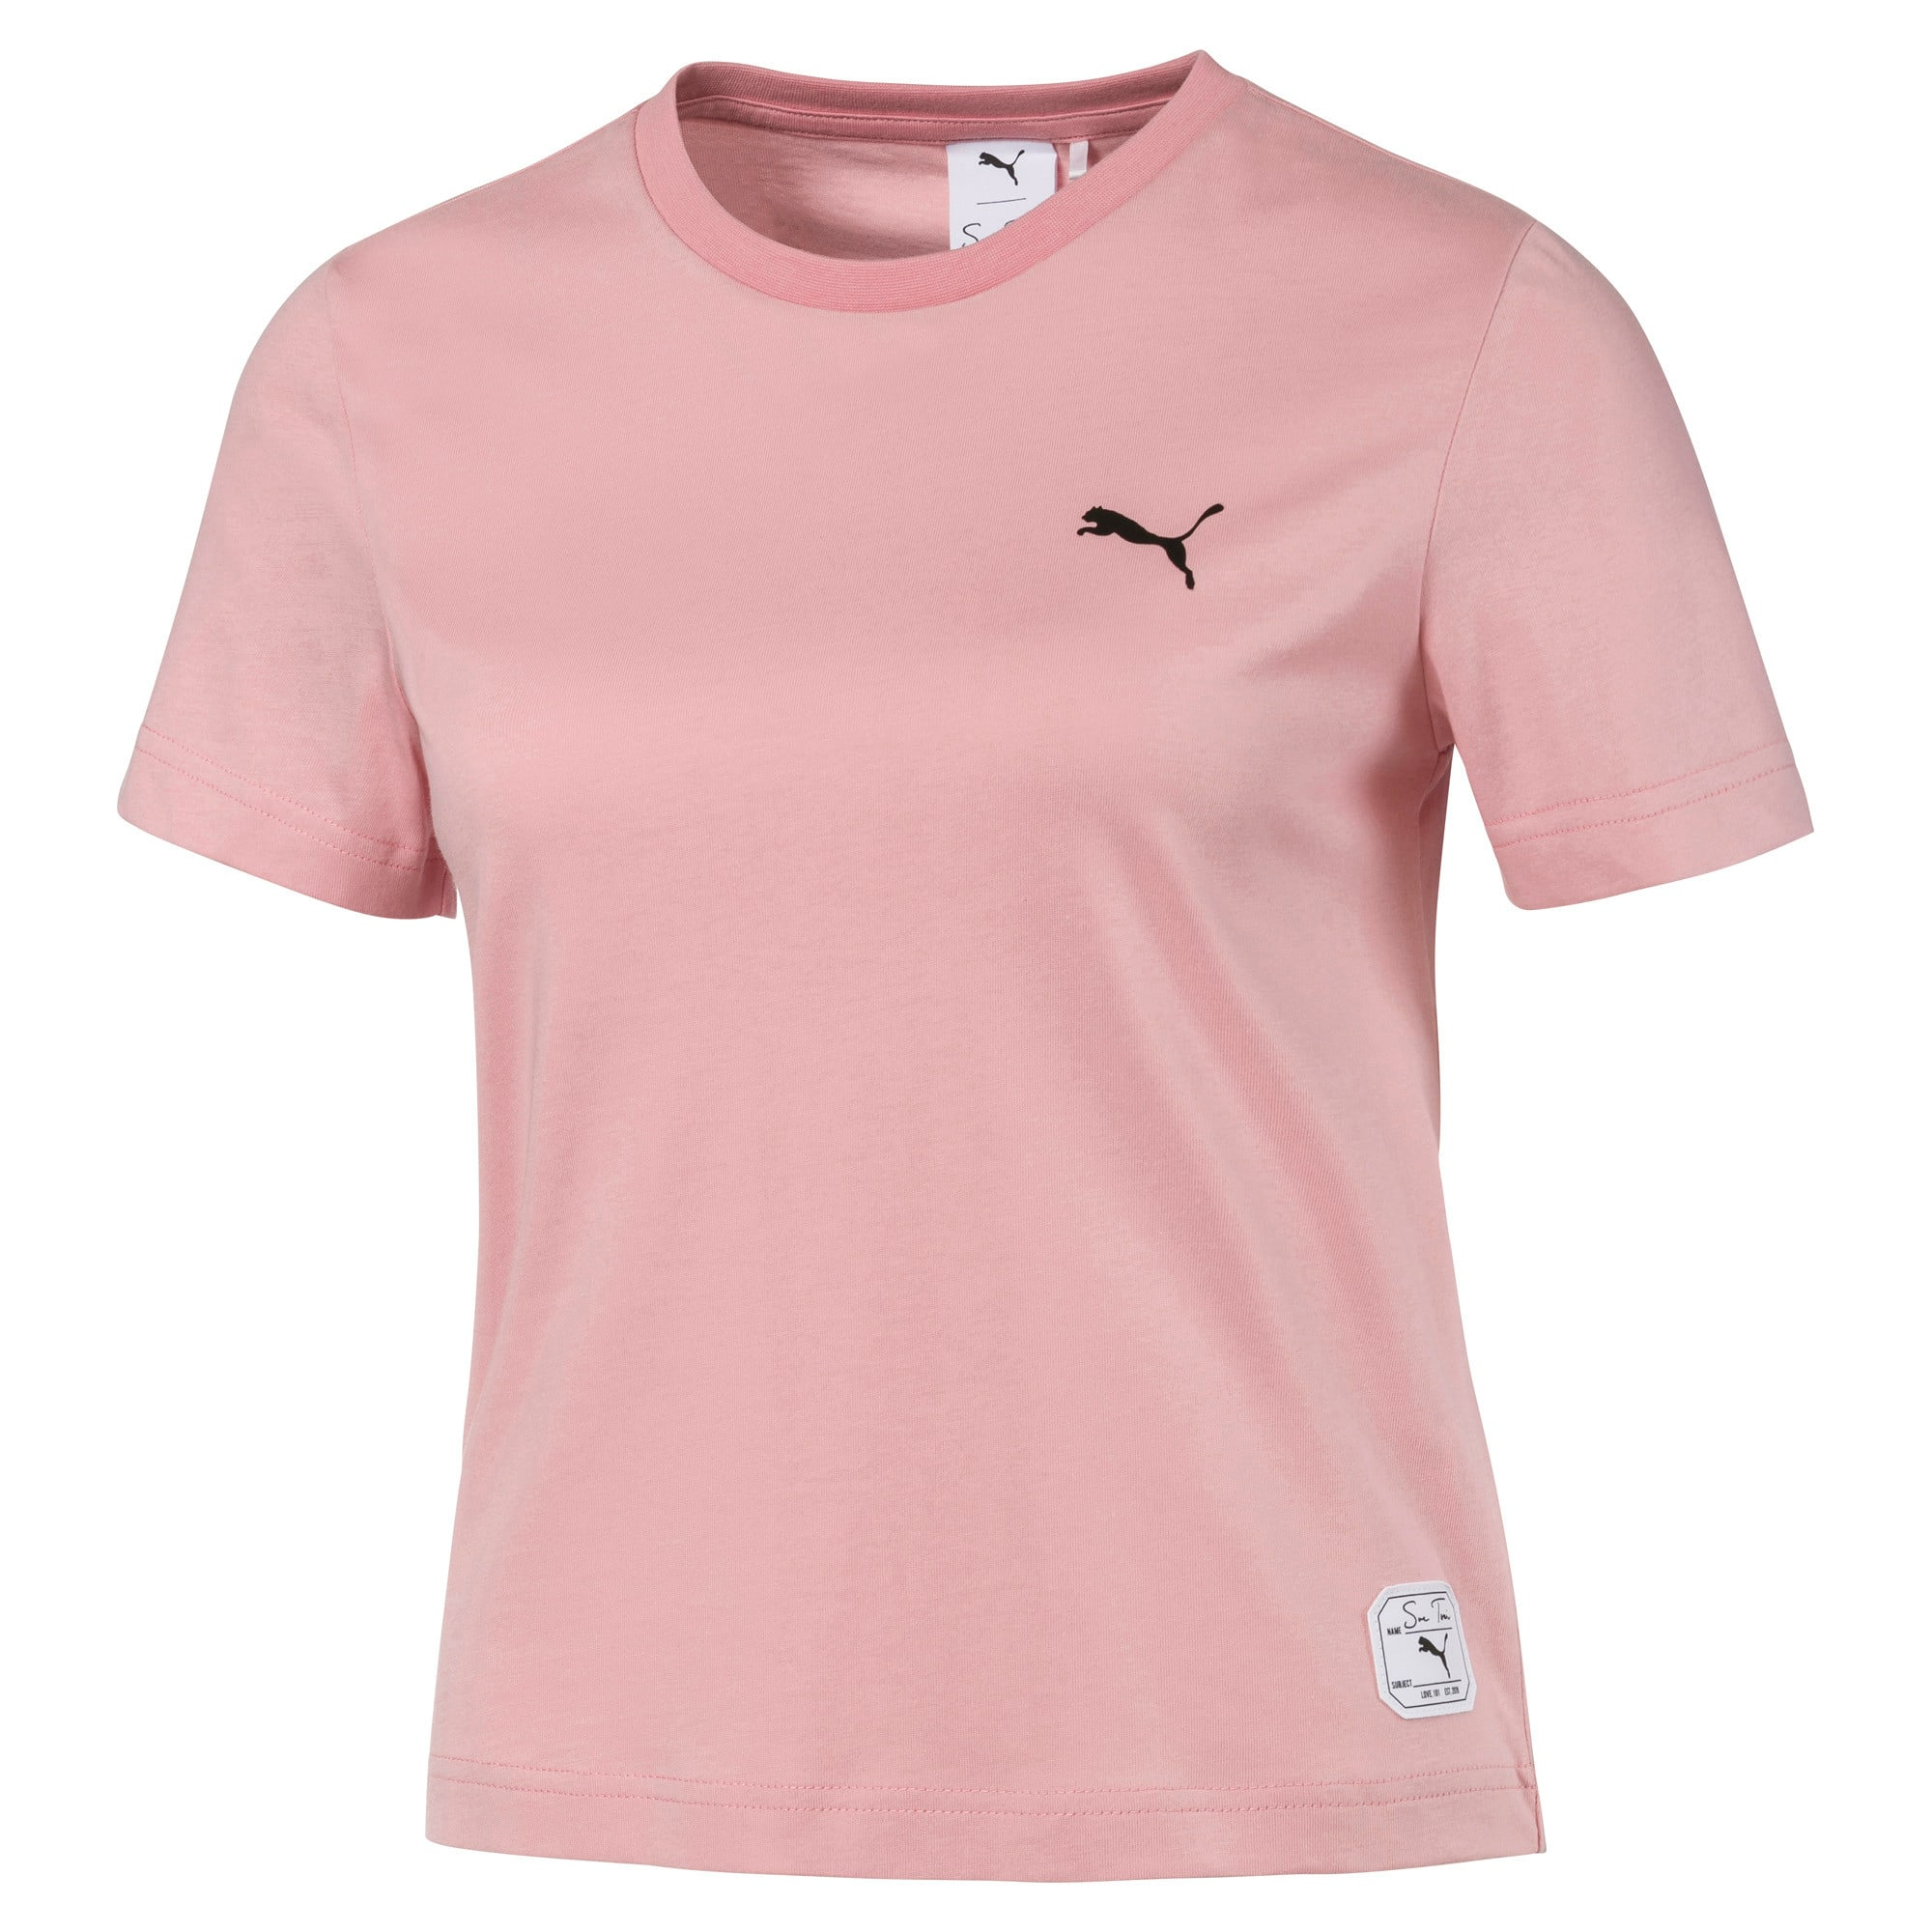 Thumbnail 1 of PUMA x SUE TSAI Women's Tee, Bridal Rose, medium